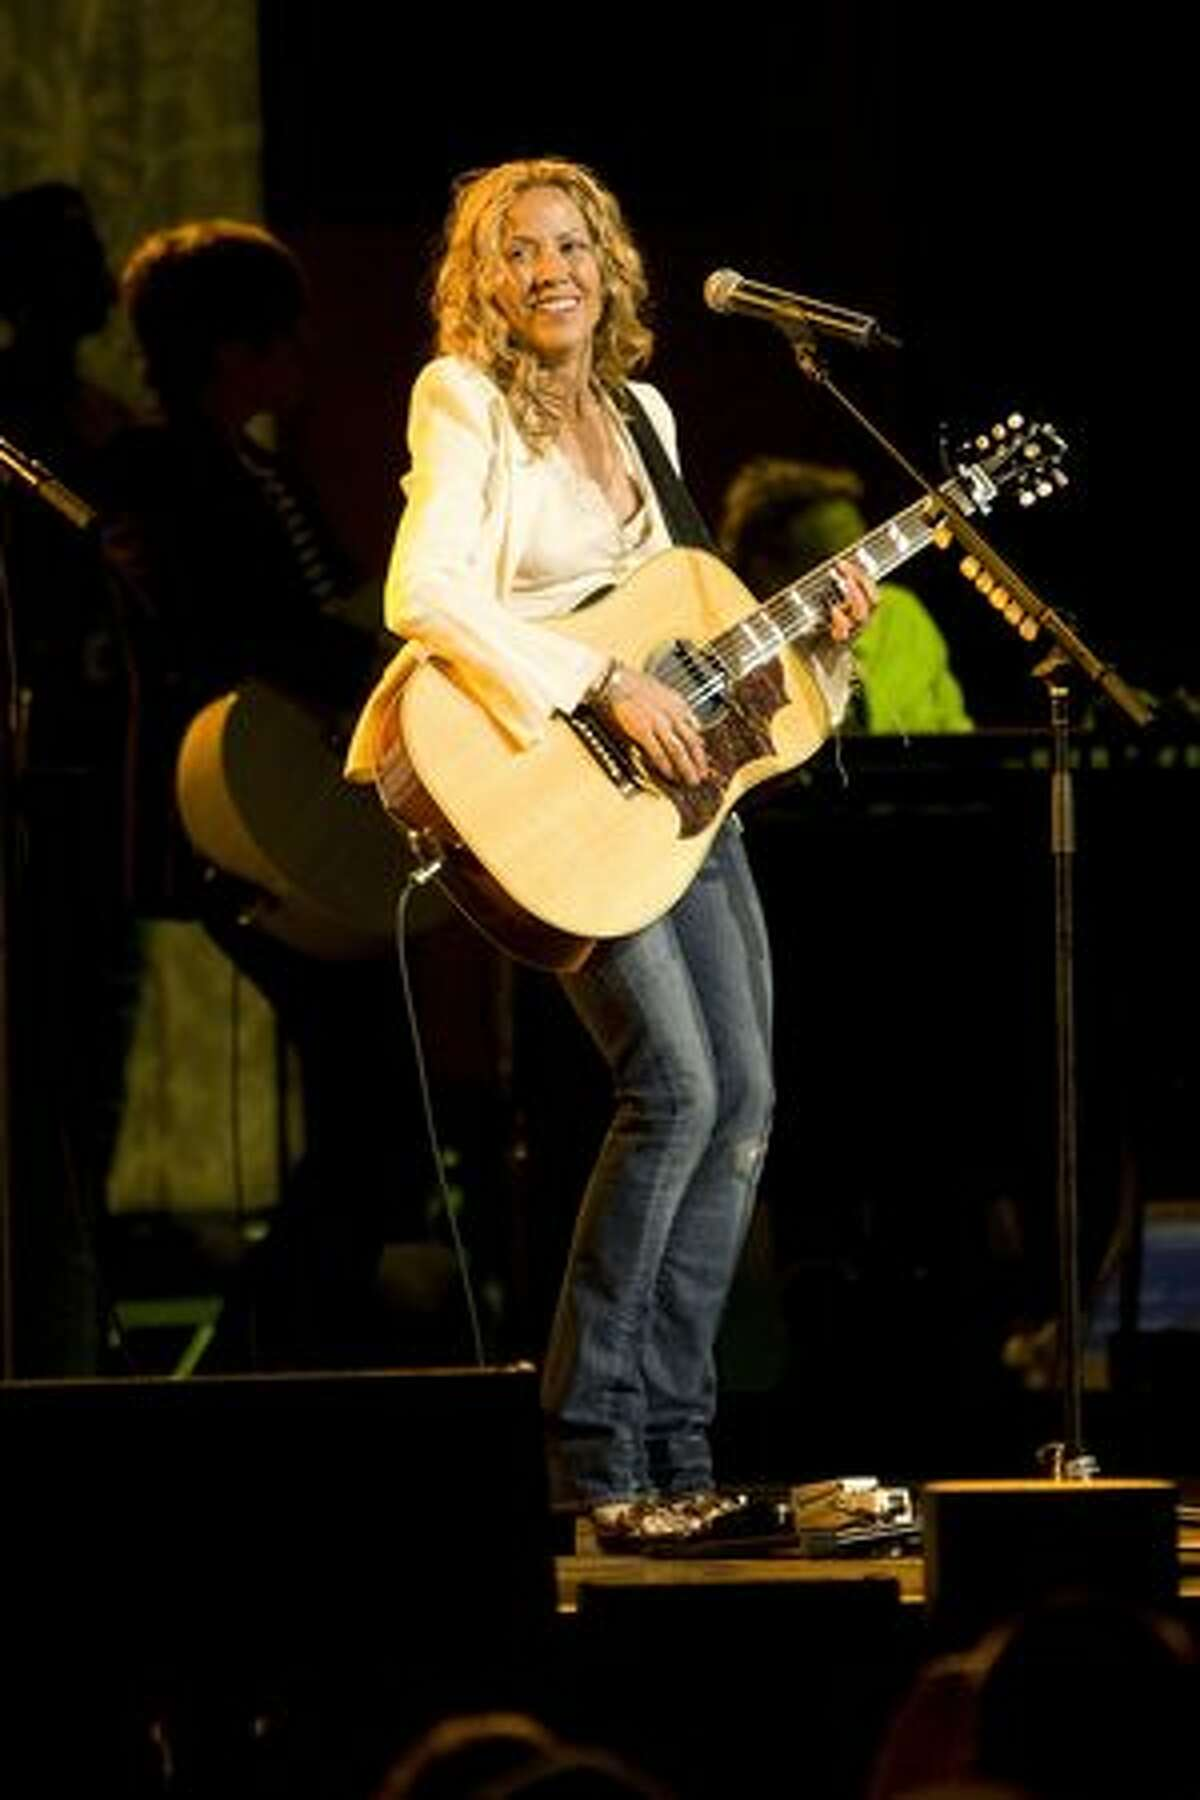 Sheryl Crow (1962-): An American singer, songwriter and musician. Hear a sample and shop at Amazon: The Very Best of Sheryl Crow (Photo by Kane Hibberd/Getty Images)